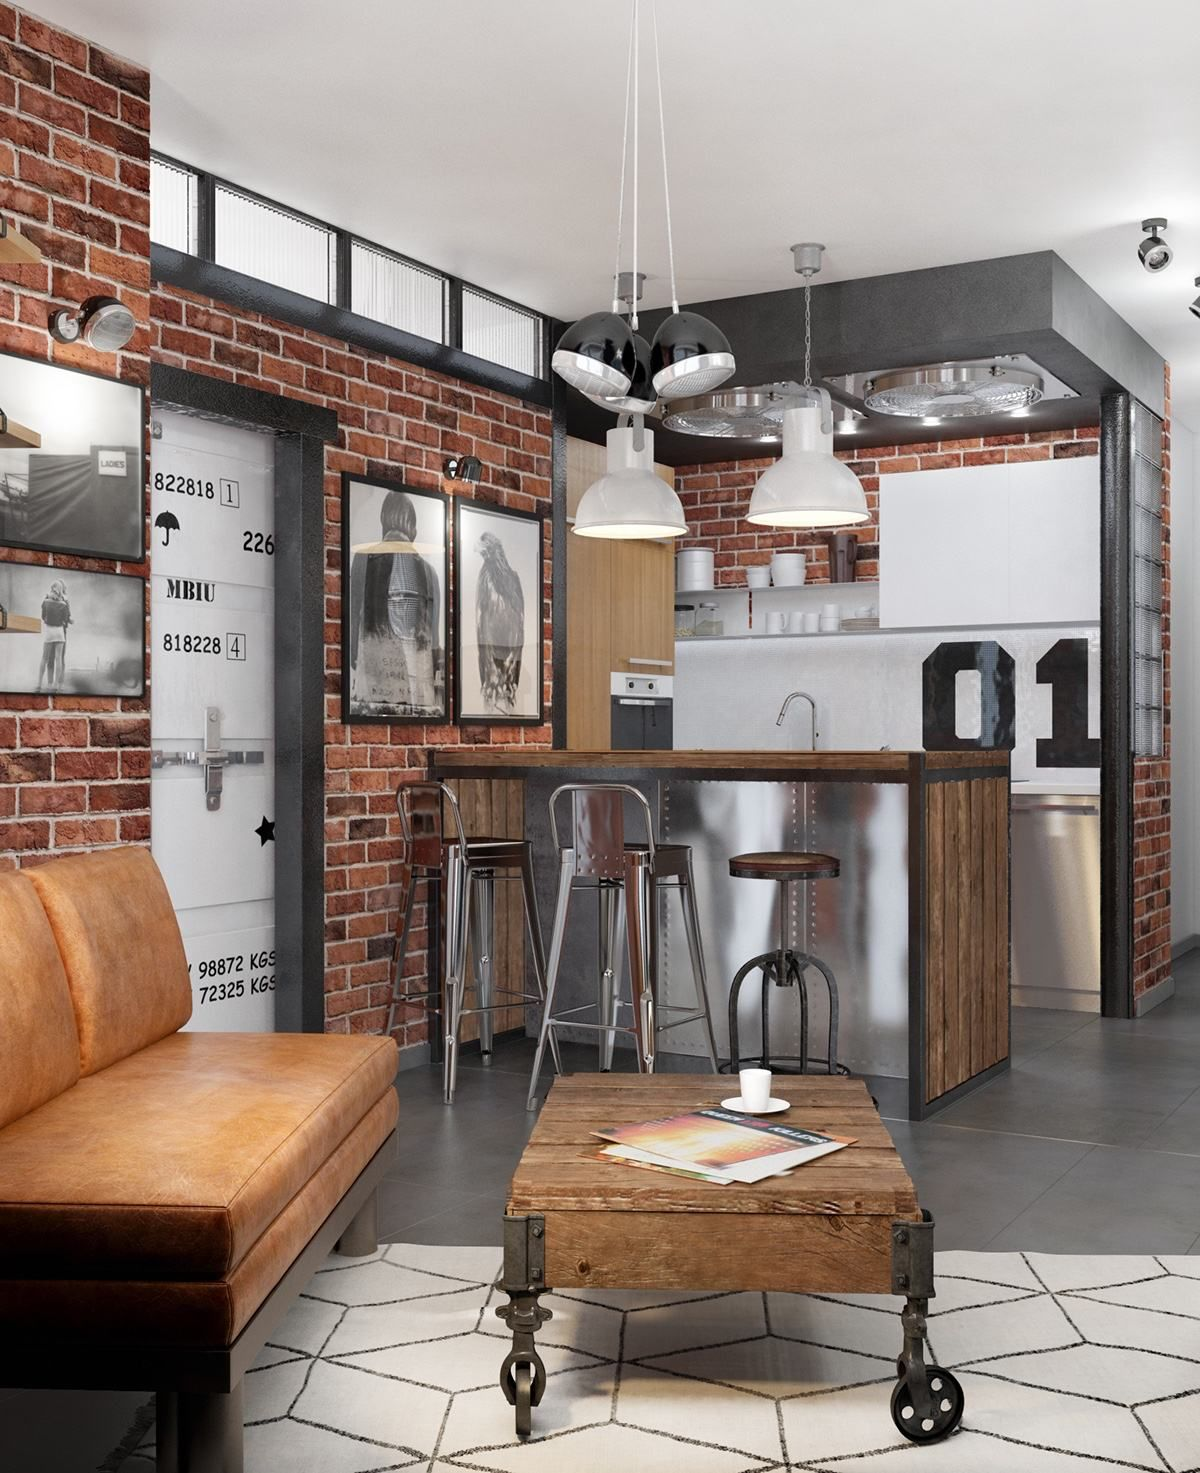 Bachelor Apartment Kitchen Design: How To Design Industrial Style Bachelor Pads: 4 Examples